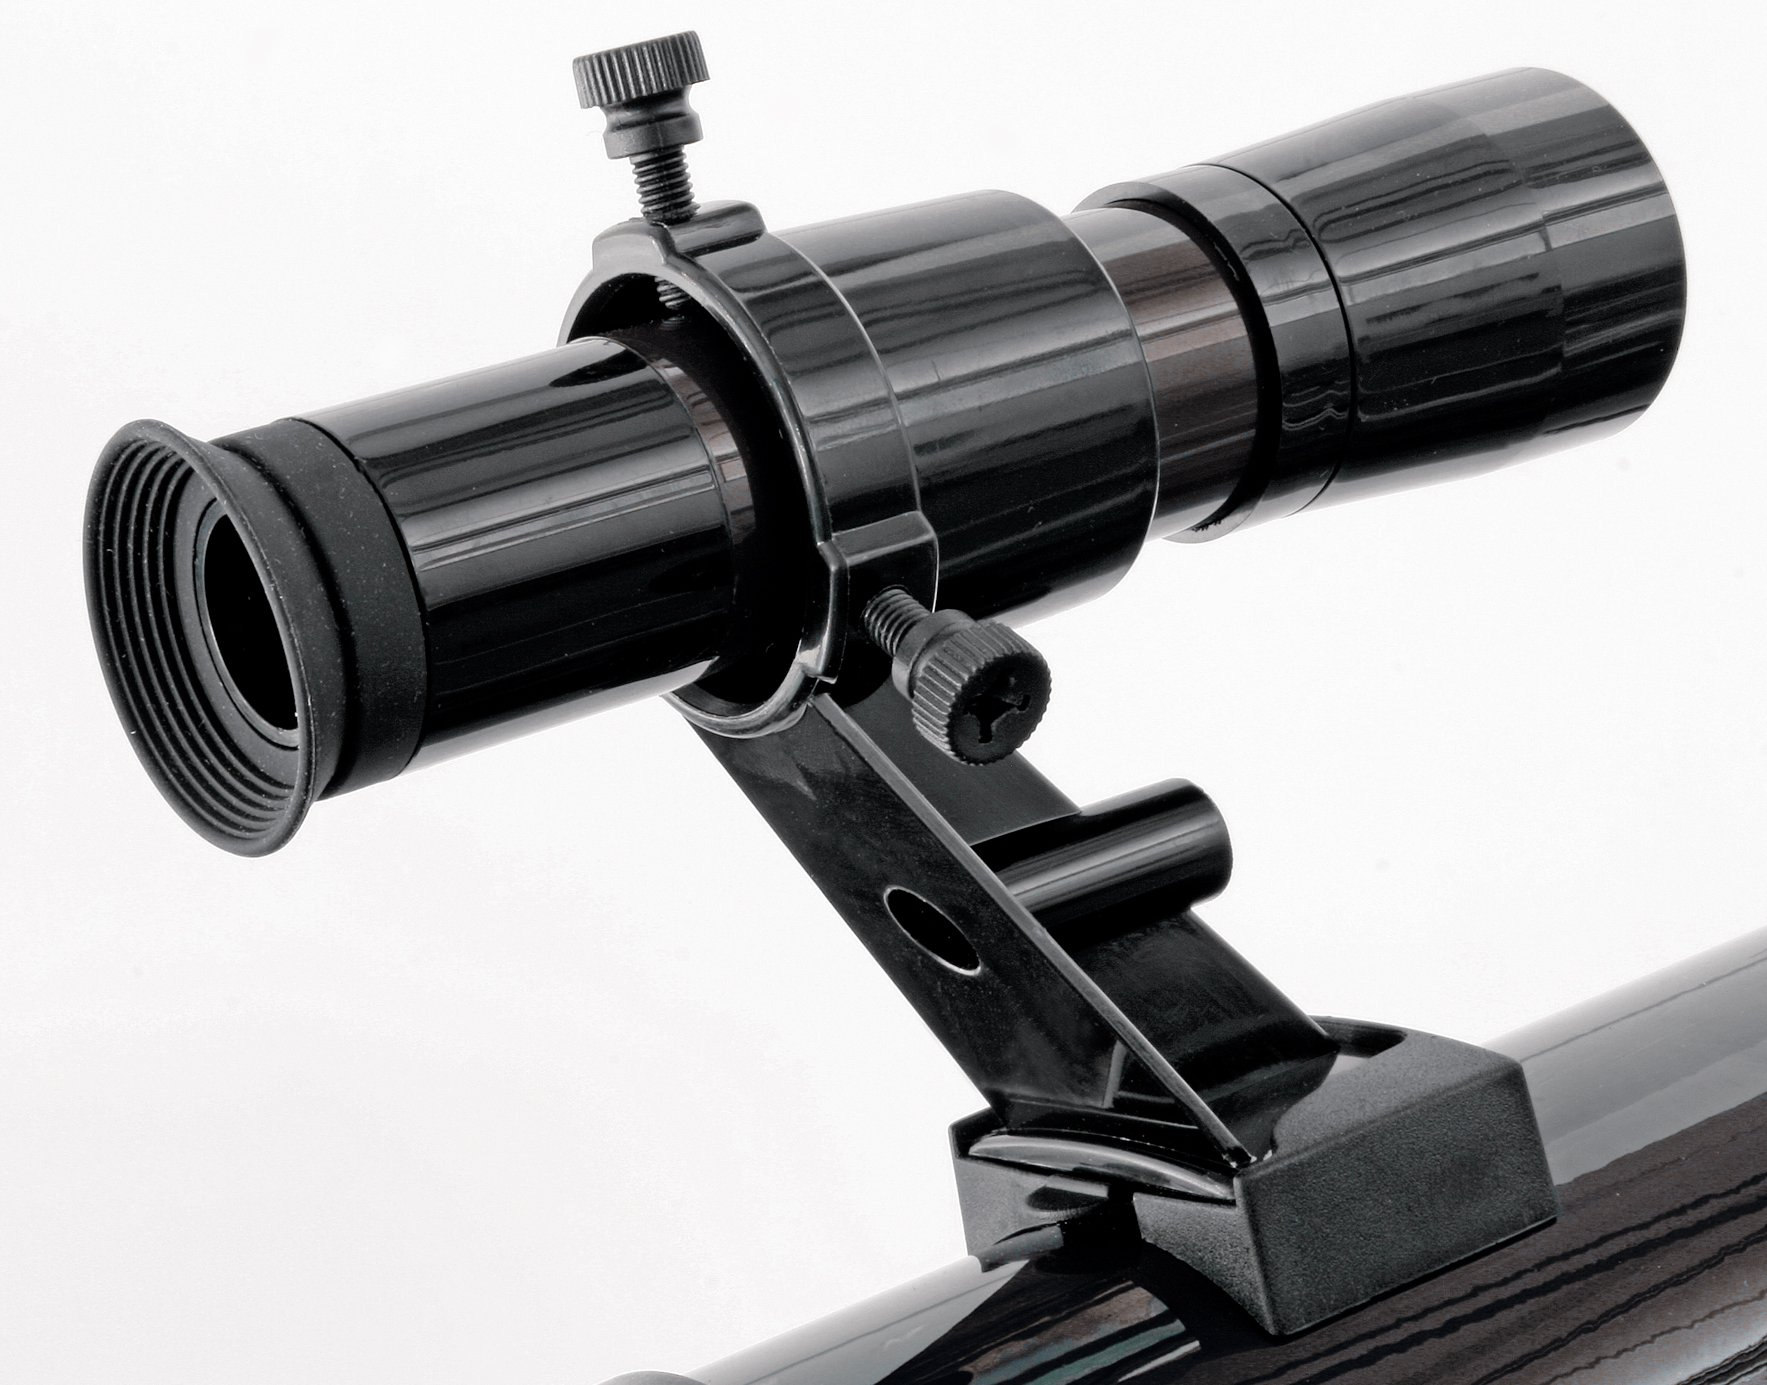 National Geographic 70/900 refractor